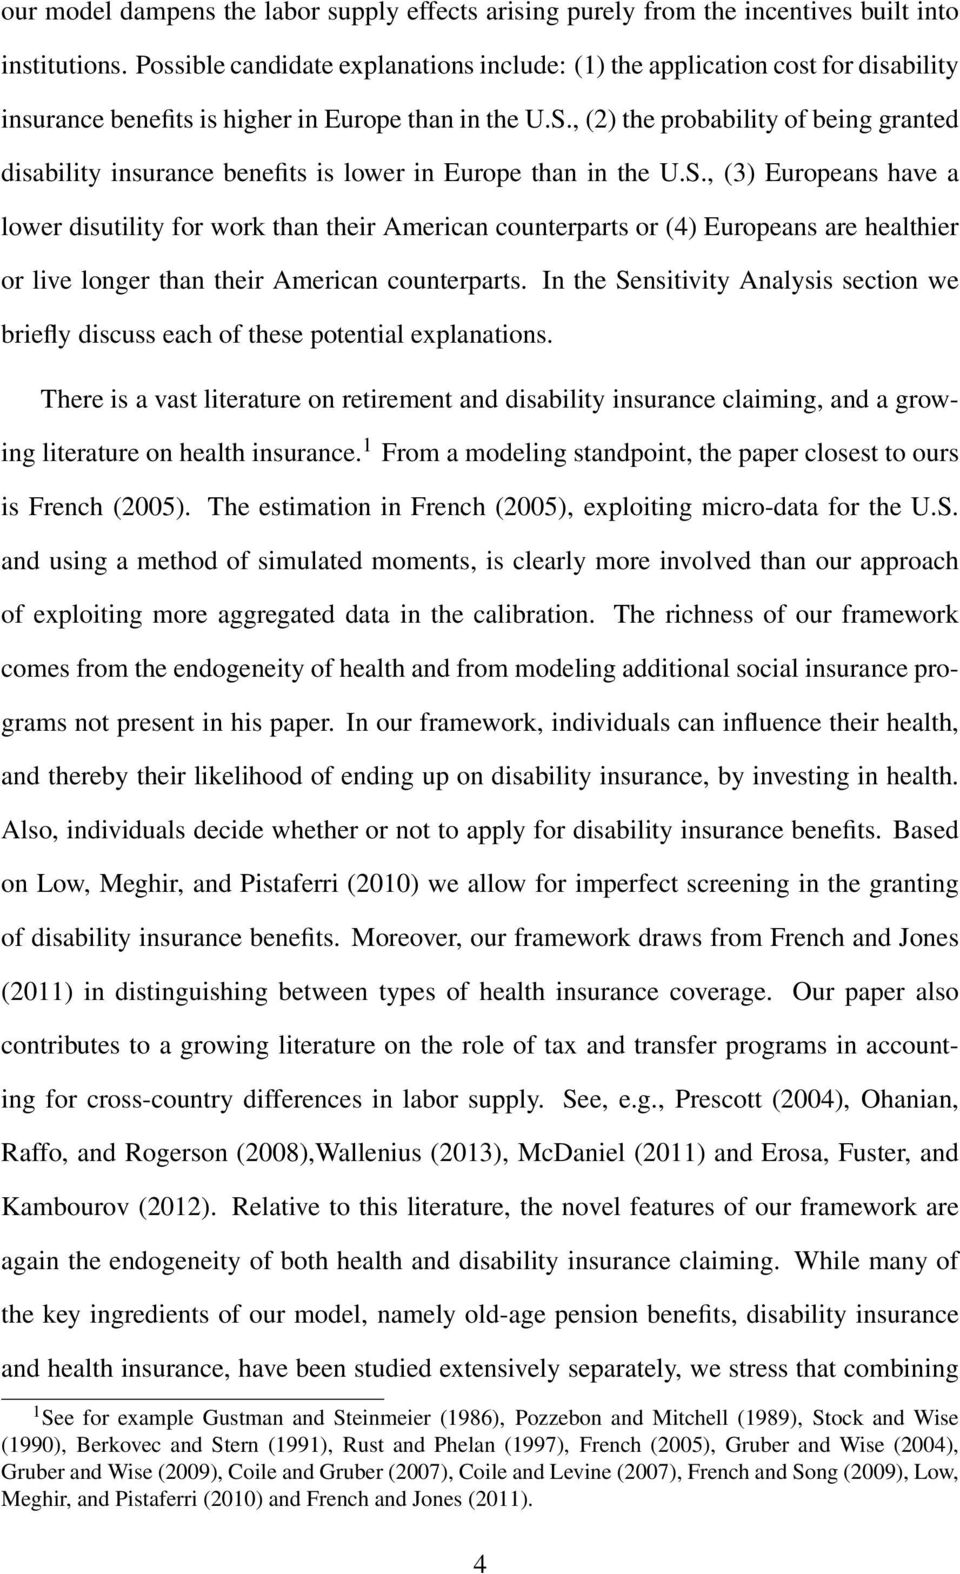 , (2) the probability of being granted disability insurance benefits is lower in Europe than in the U.S.